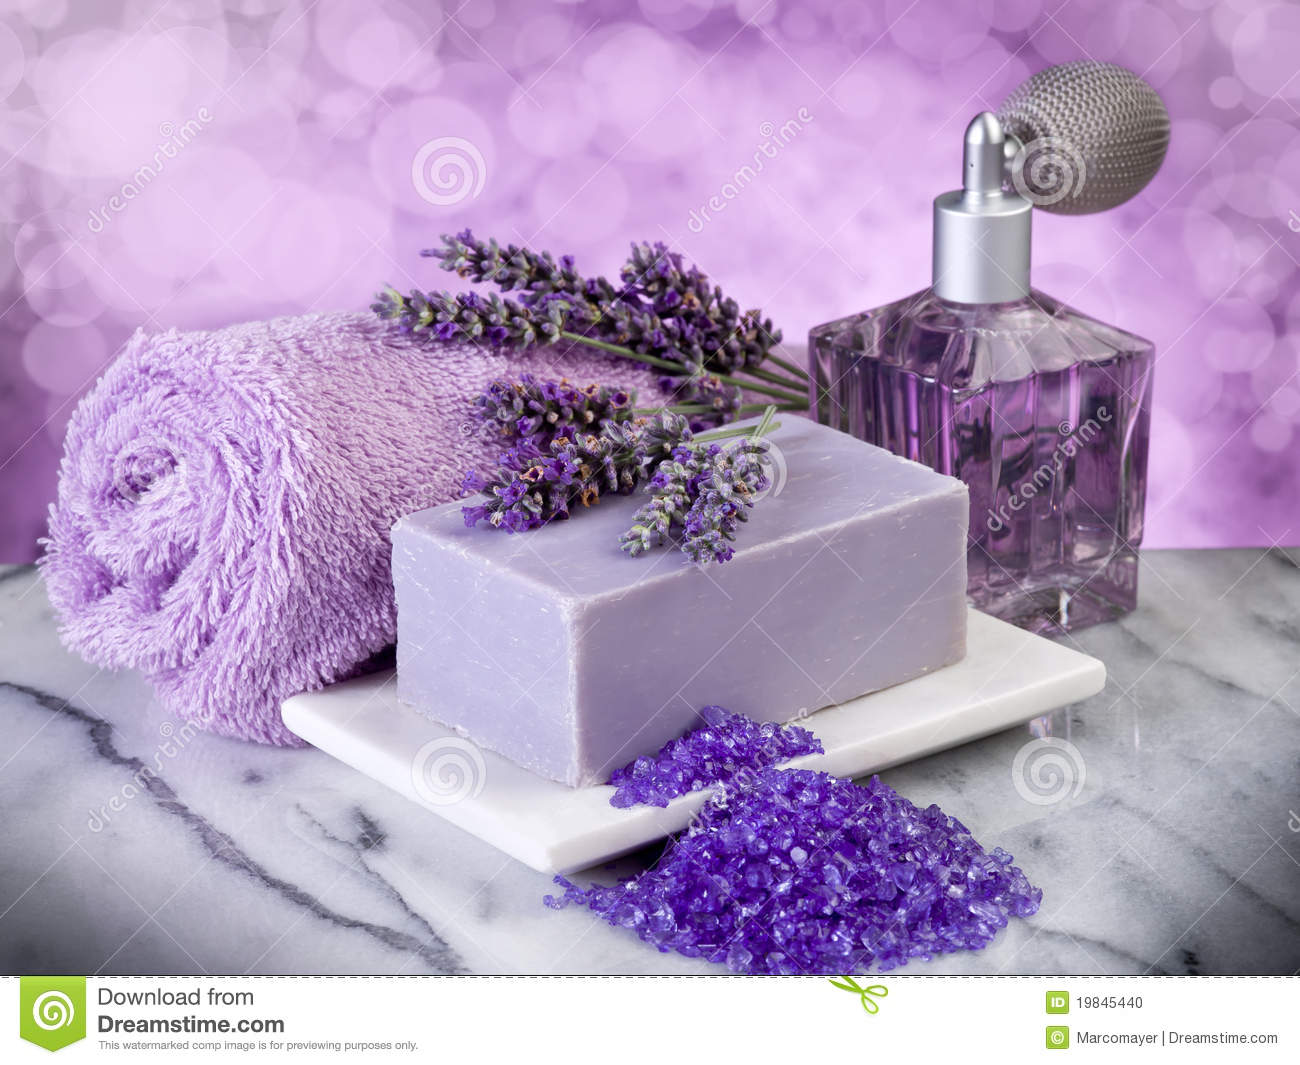 Spa Lavender Bath Products Stock Photo Image 19845440